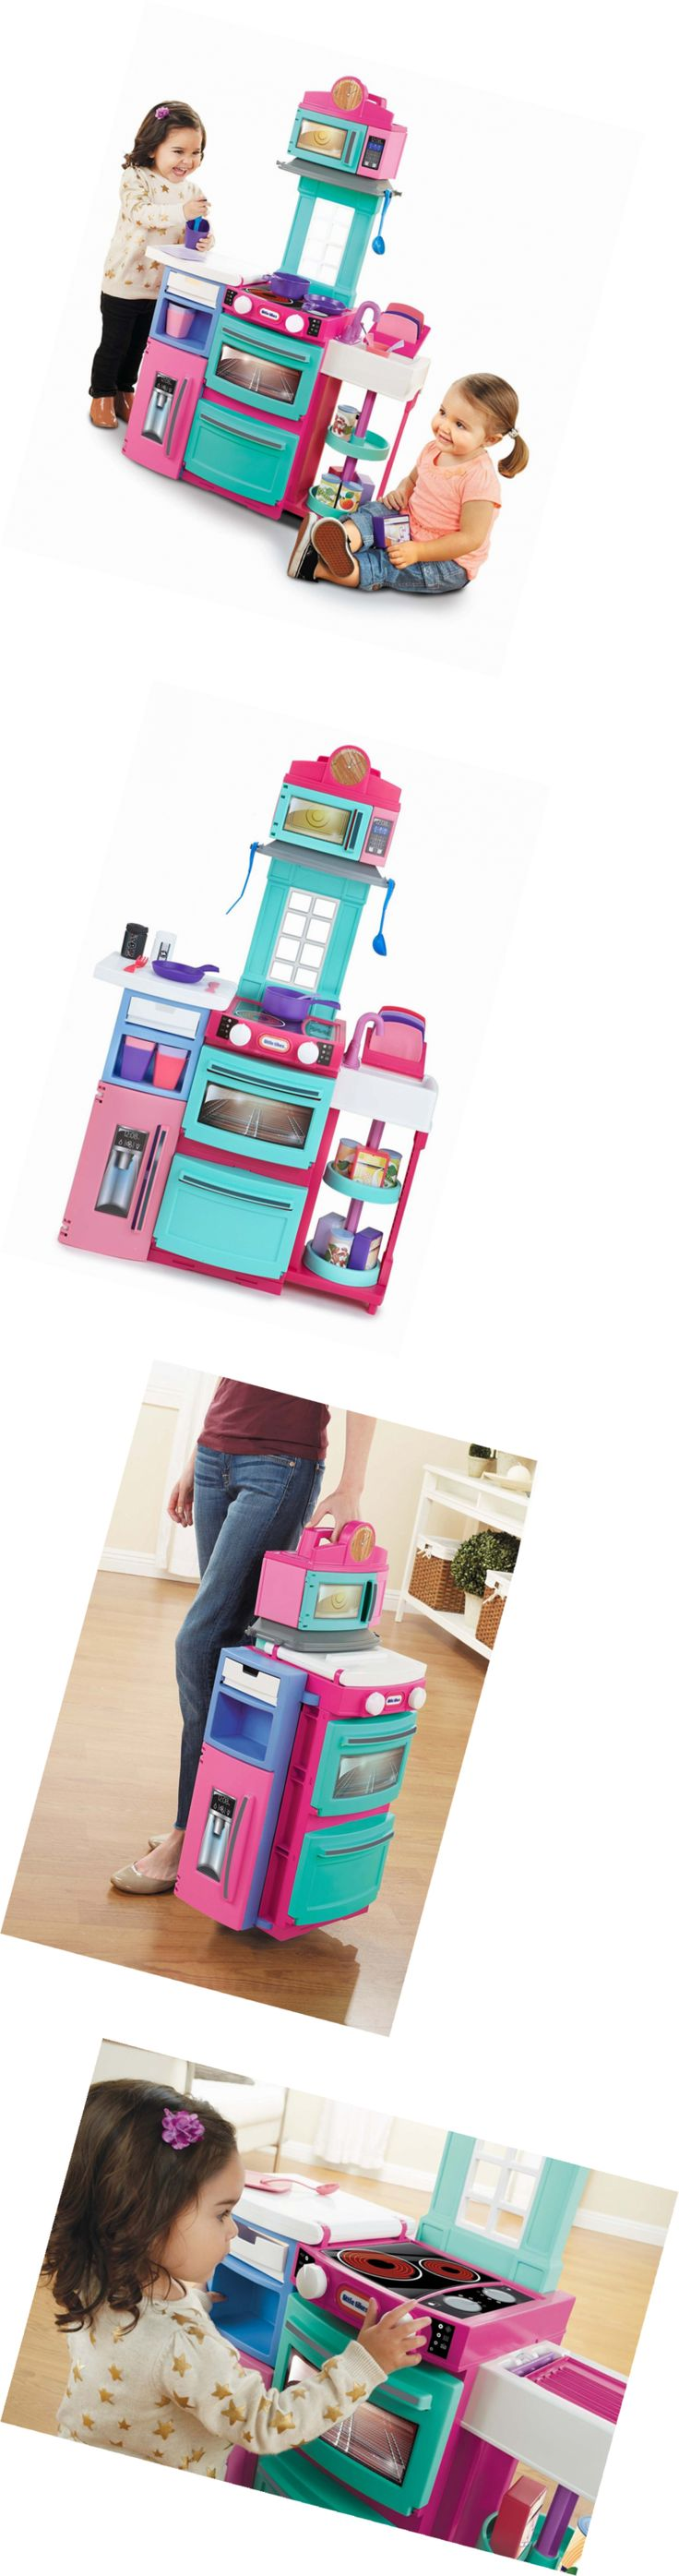 Child Size 2574: Little Tikes Cook N Store Kitchen Playset - Pink -> BUY IT NOW ONLY: $55 on eBay!